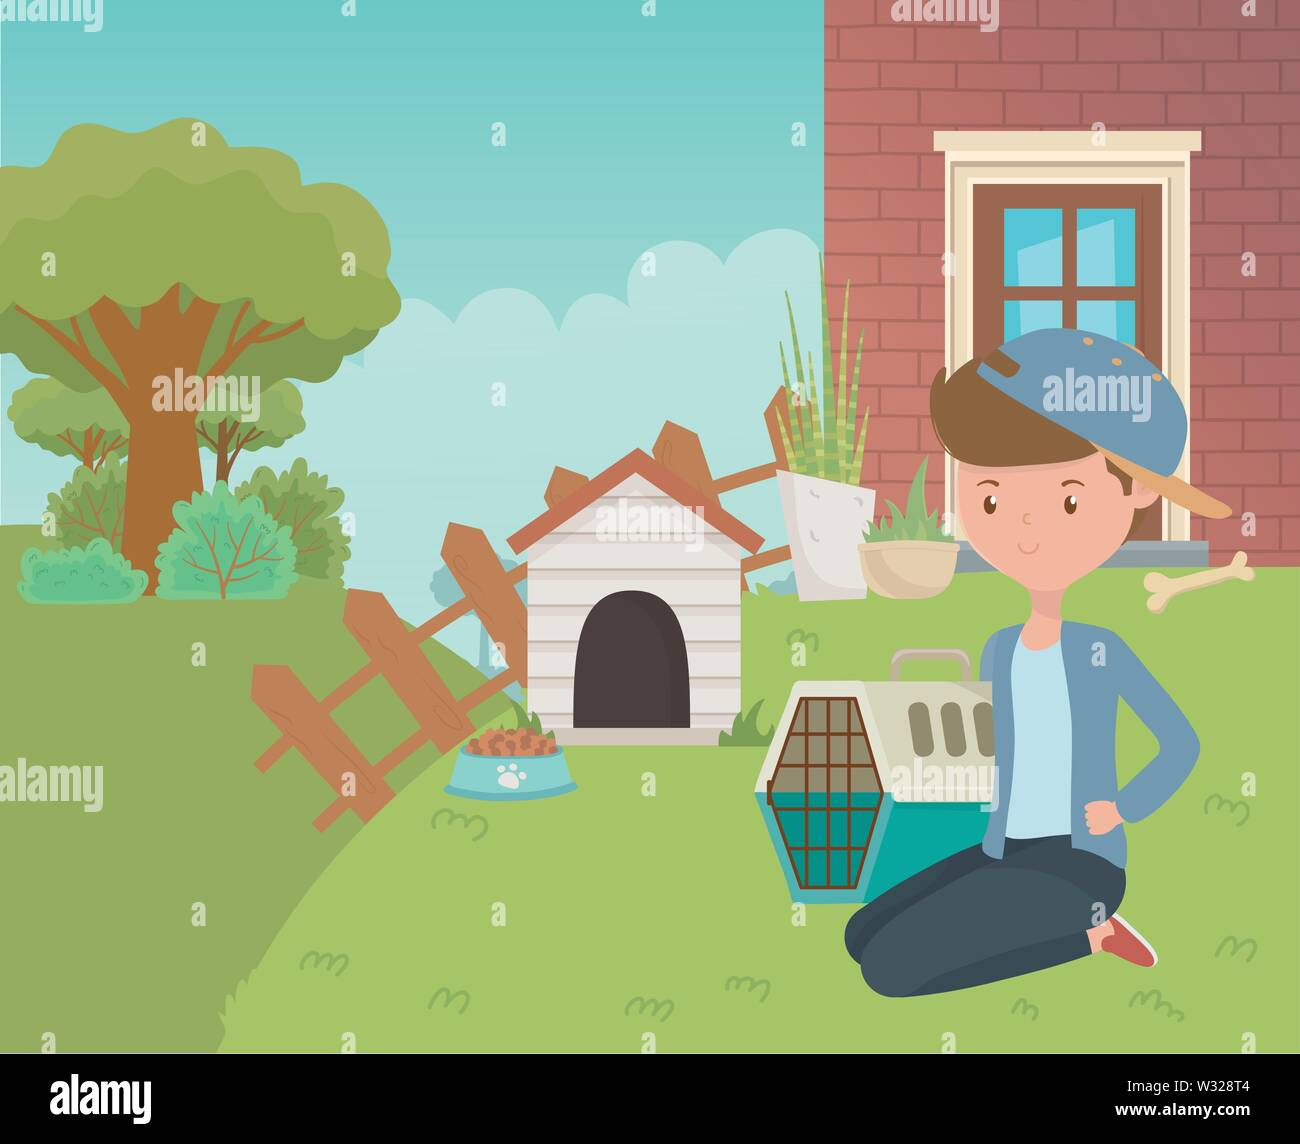 House and boy cartoon design, Mascot pet domestic animal friendship care and lifestyle theme Vector illustration - Stock Image